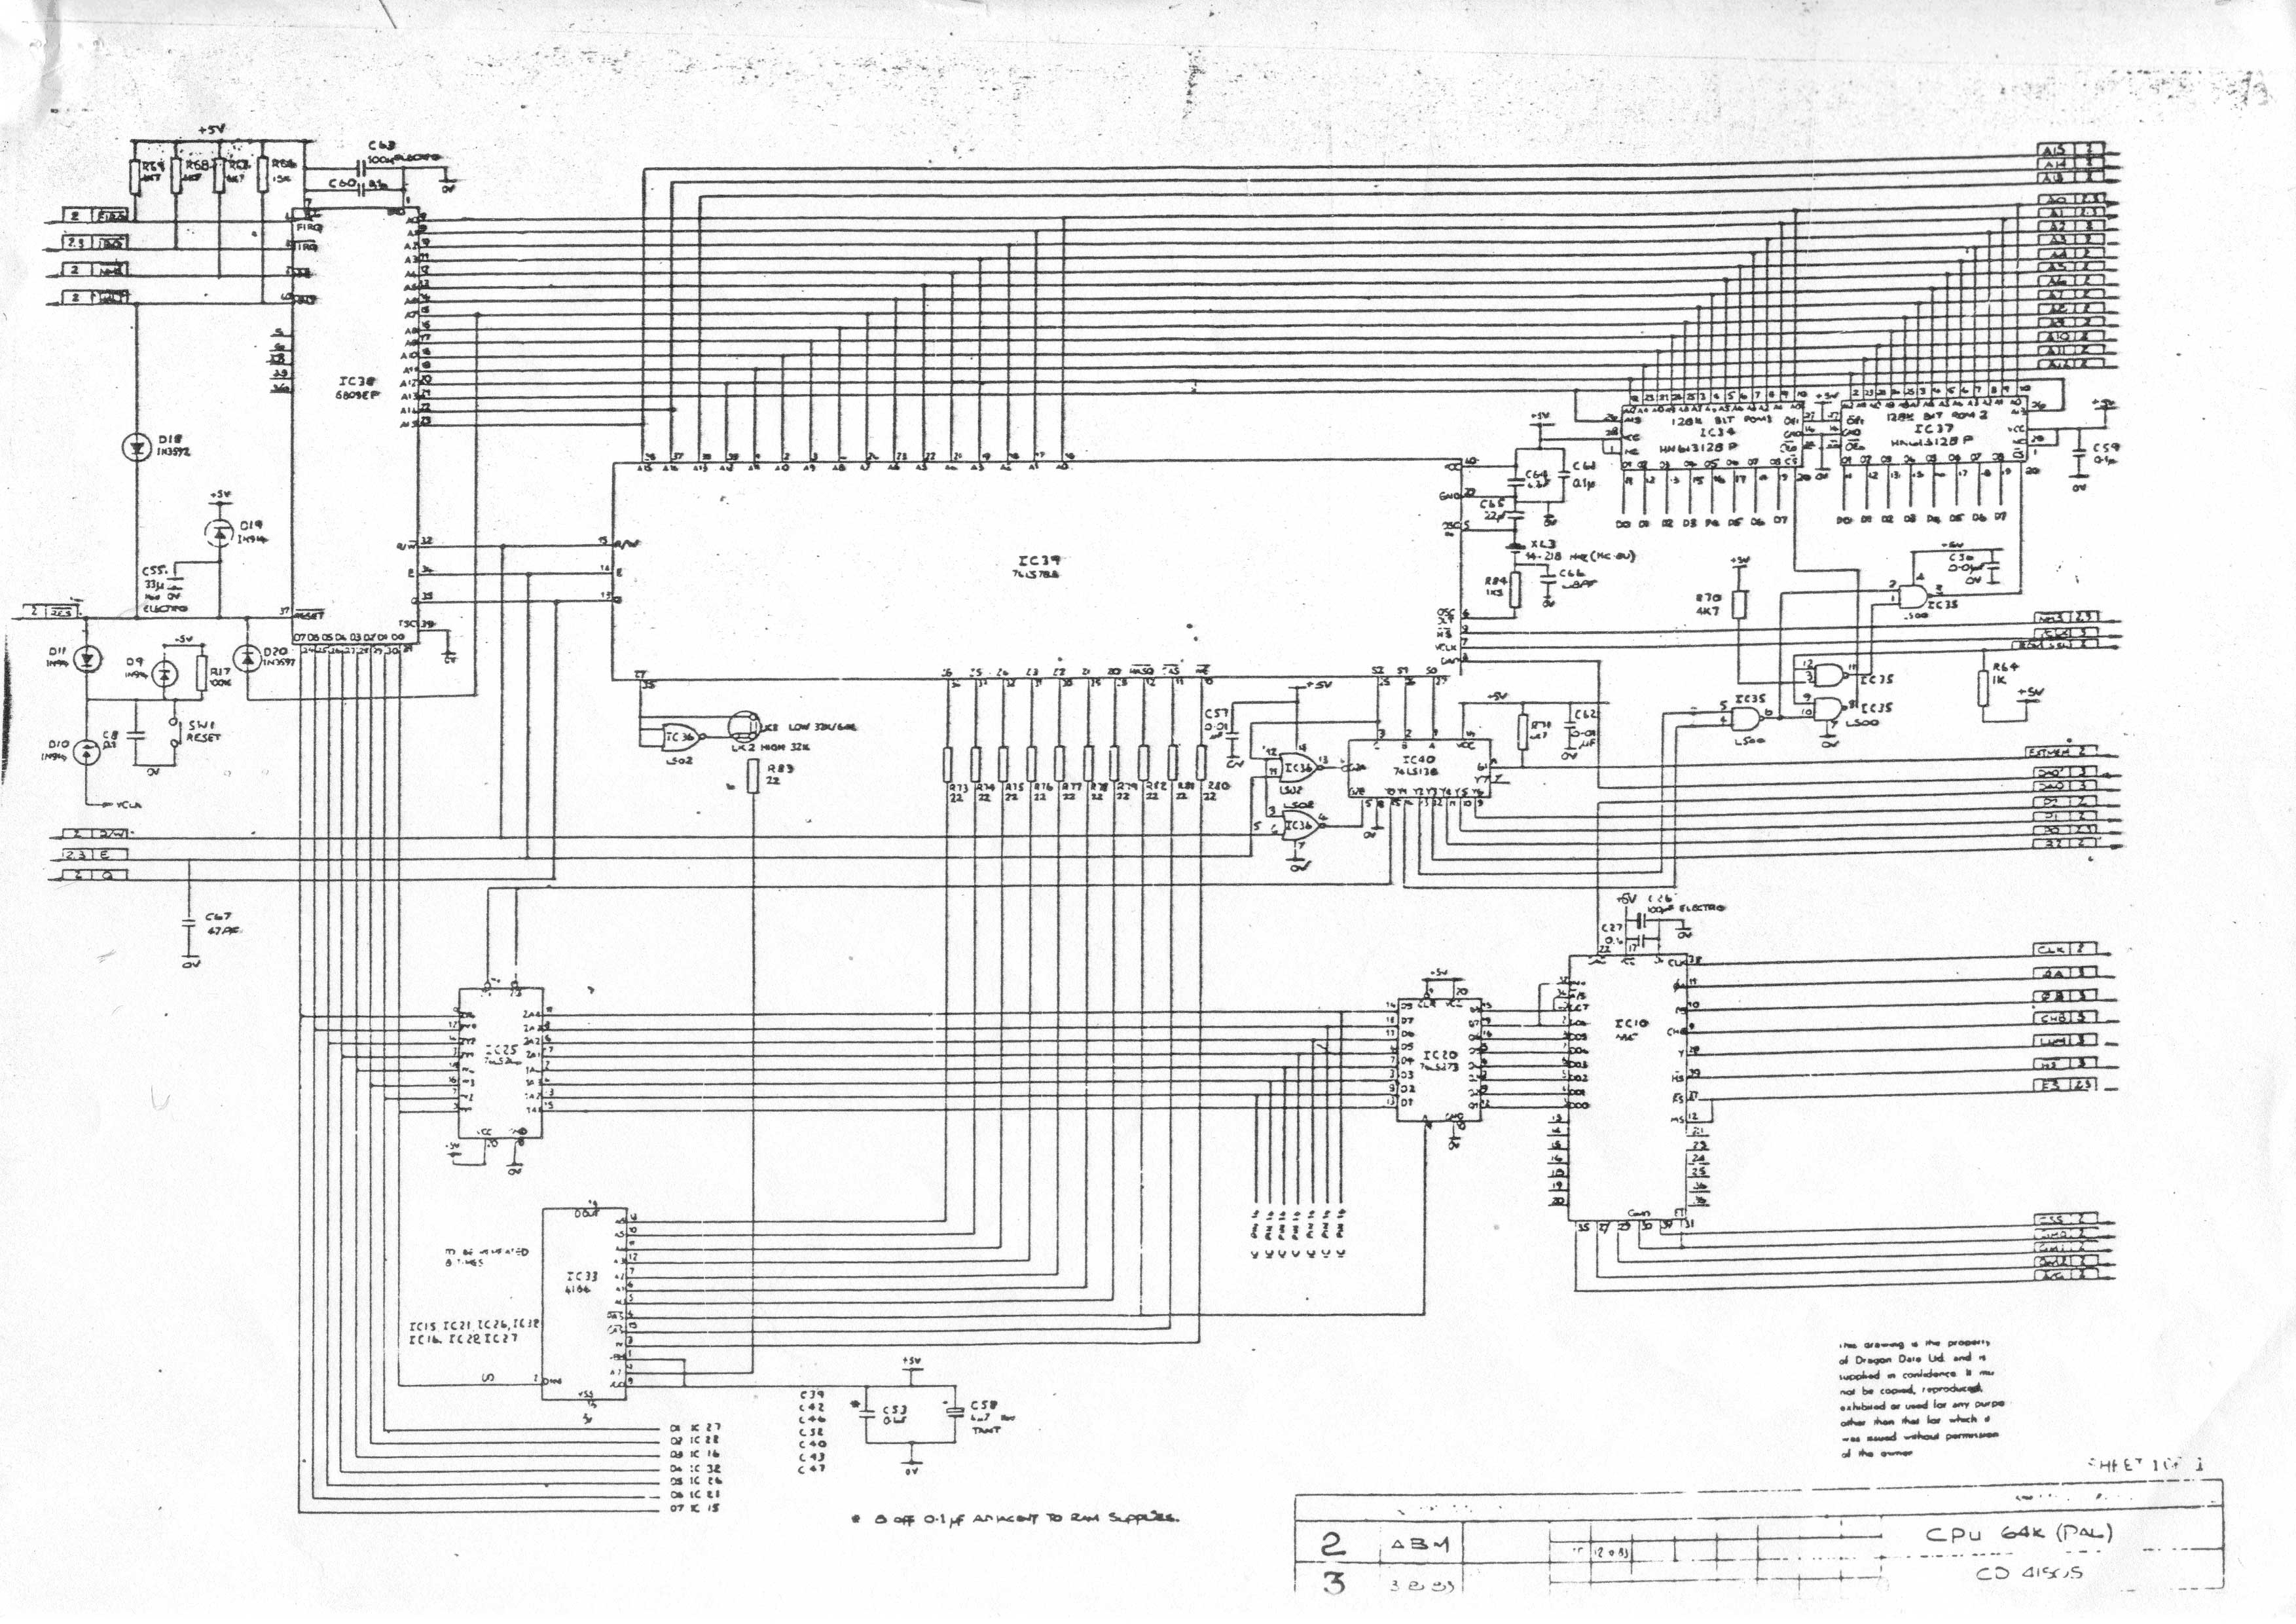 Technical Dragon 64 Schematics Cpu Circuit Diagram And Support Chips 809k